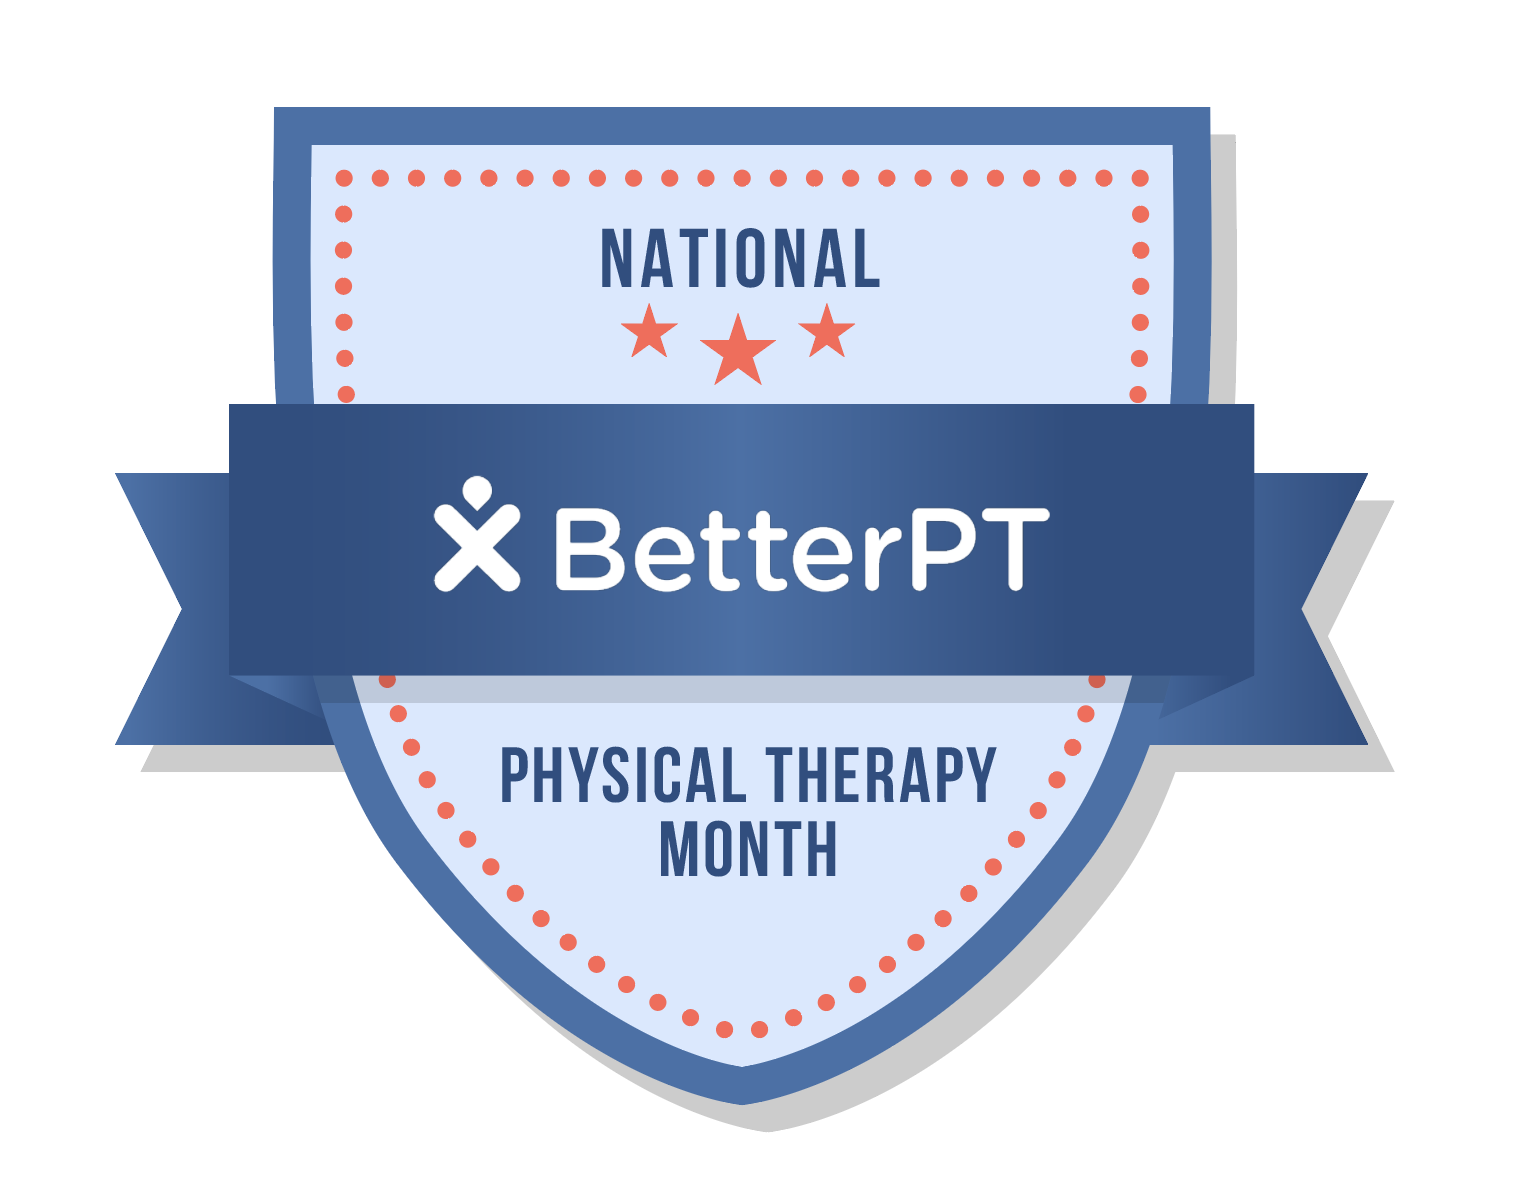 national physical therapy month banner